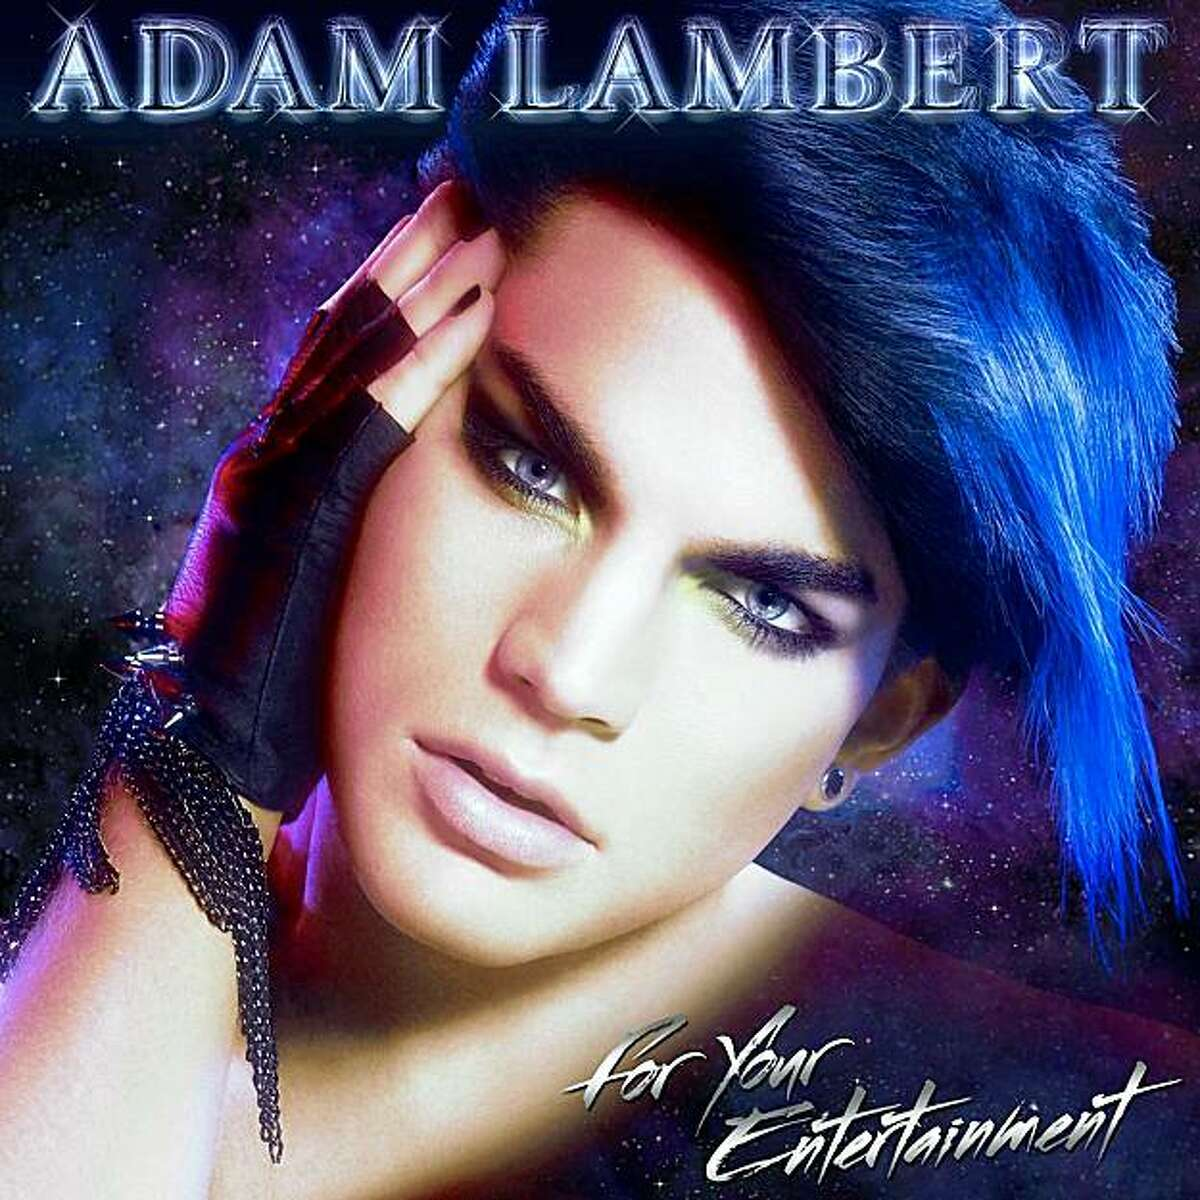 In this CD cover image released by 19/RCA Records, Adam Lambert's